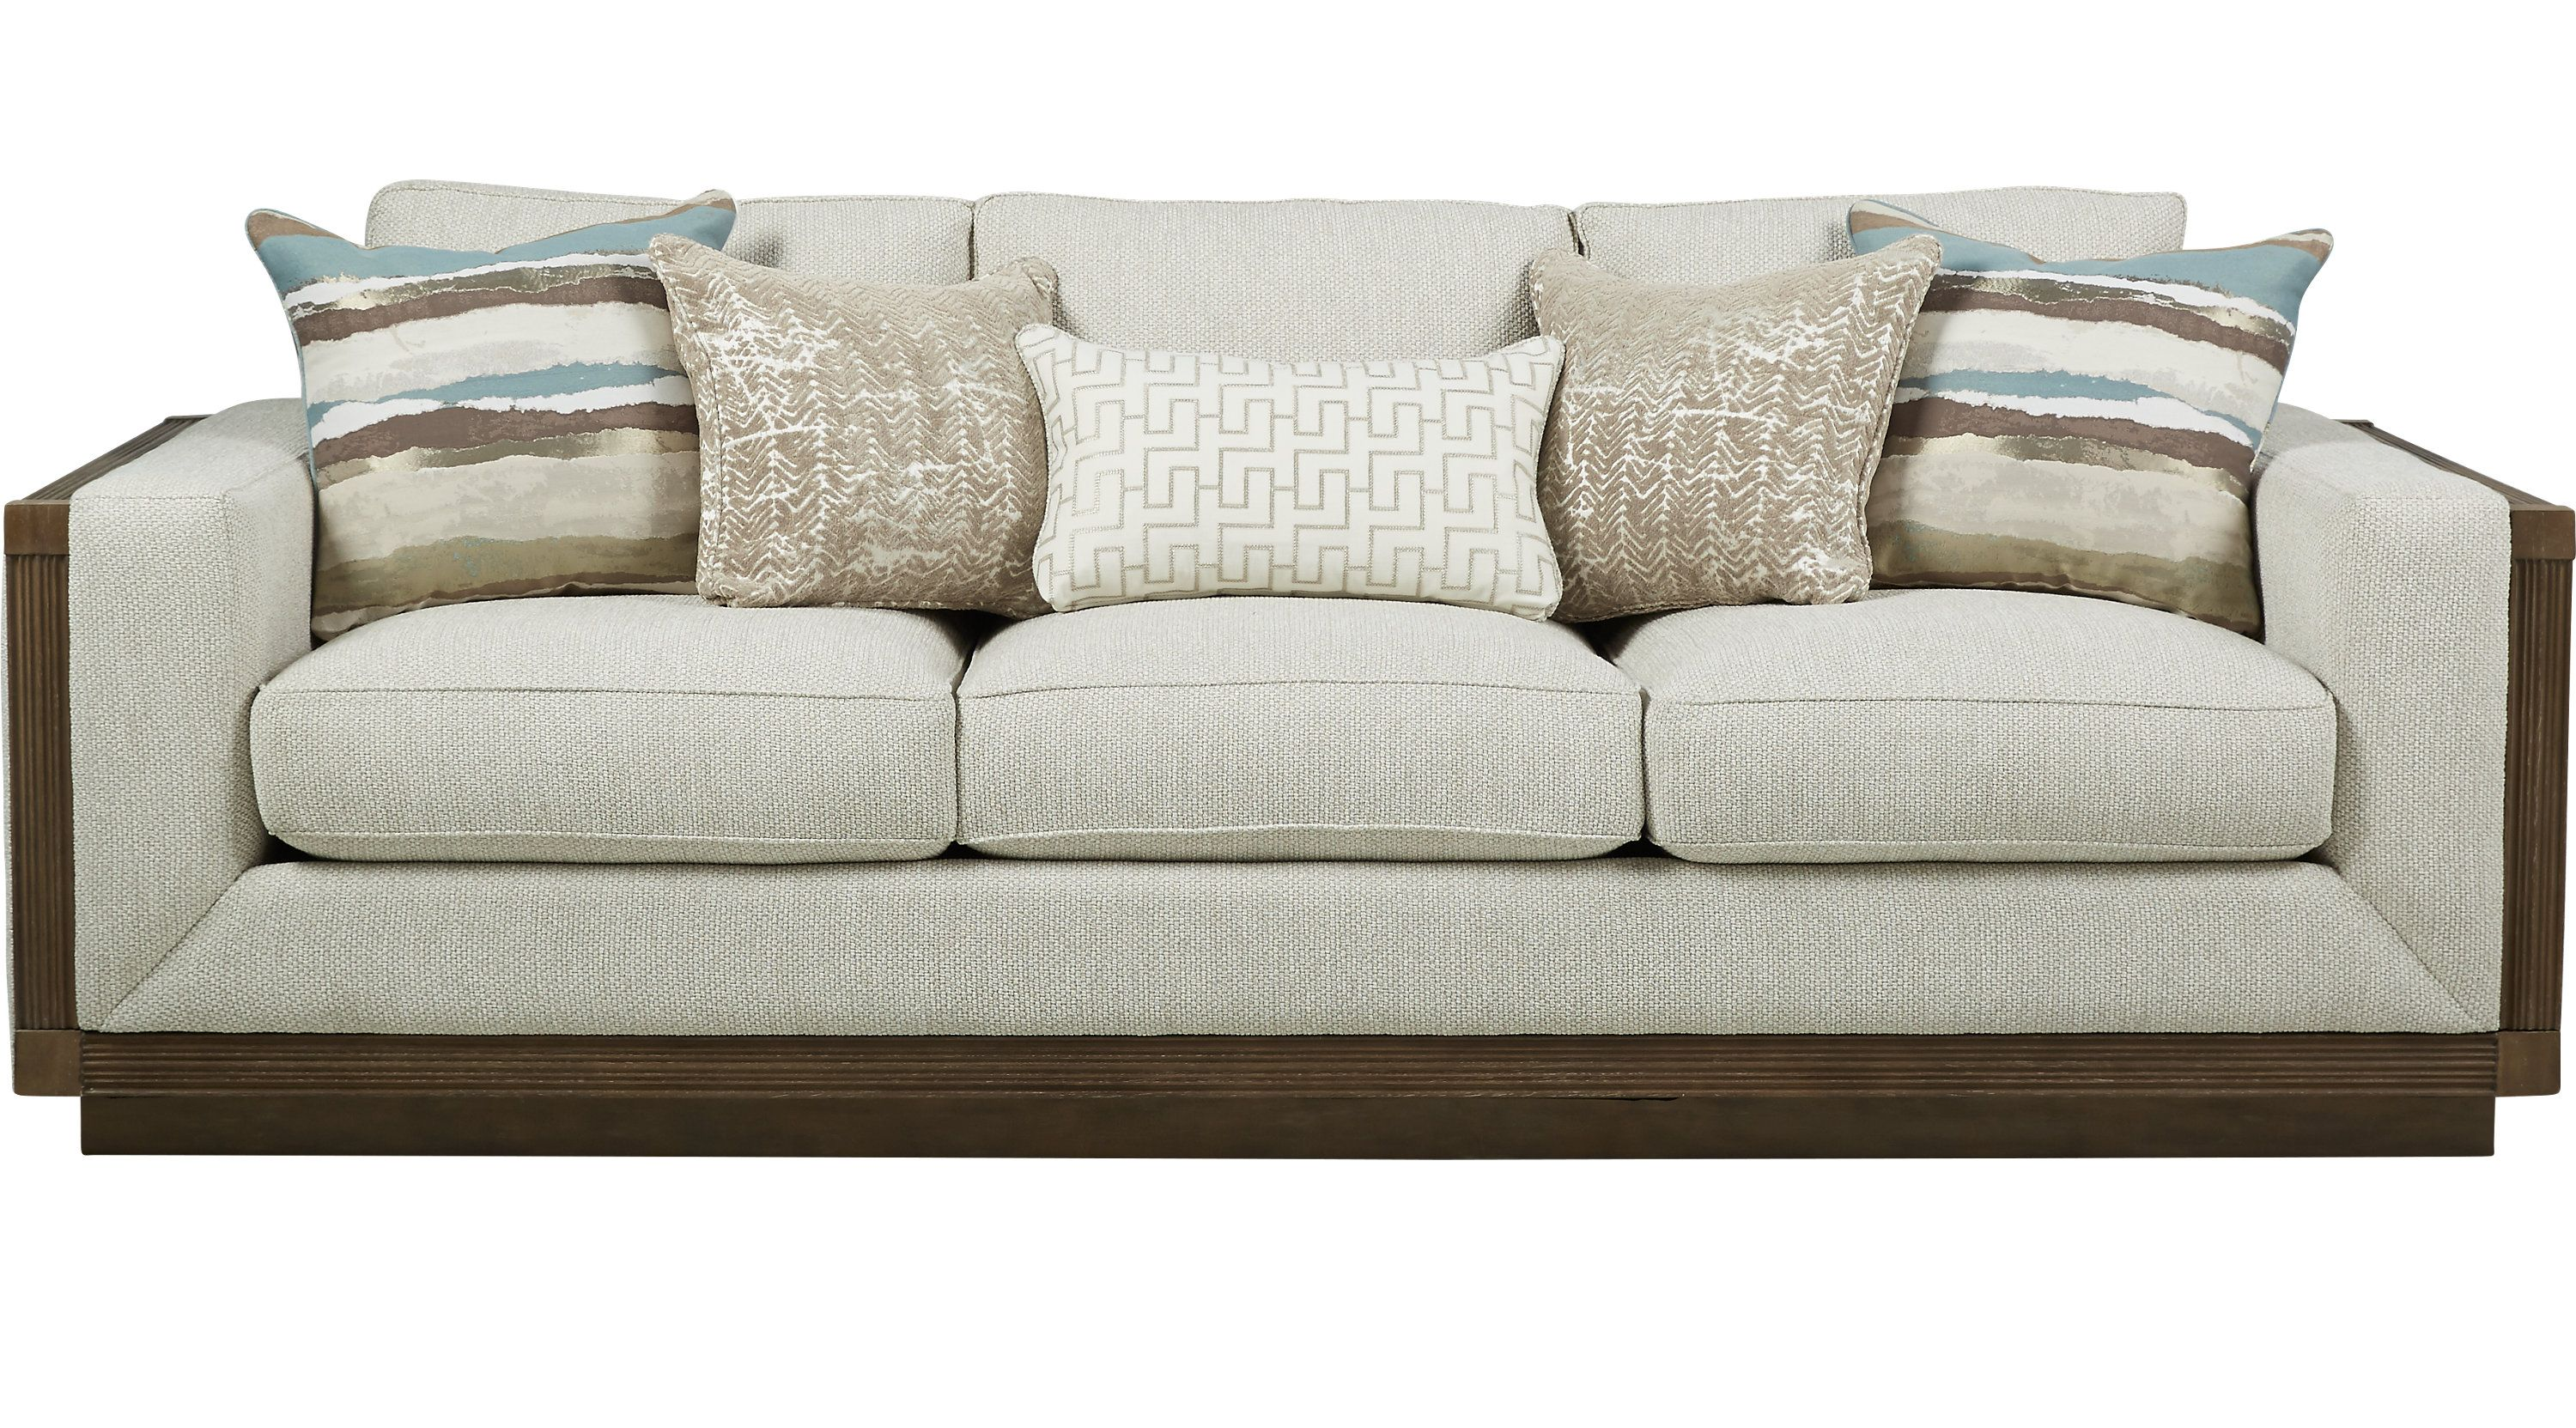 Sofas Cindy Crawford Cindy Crawford Home Pacific Harbor Beige